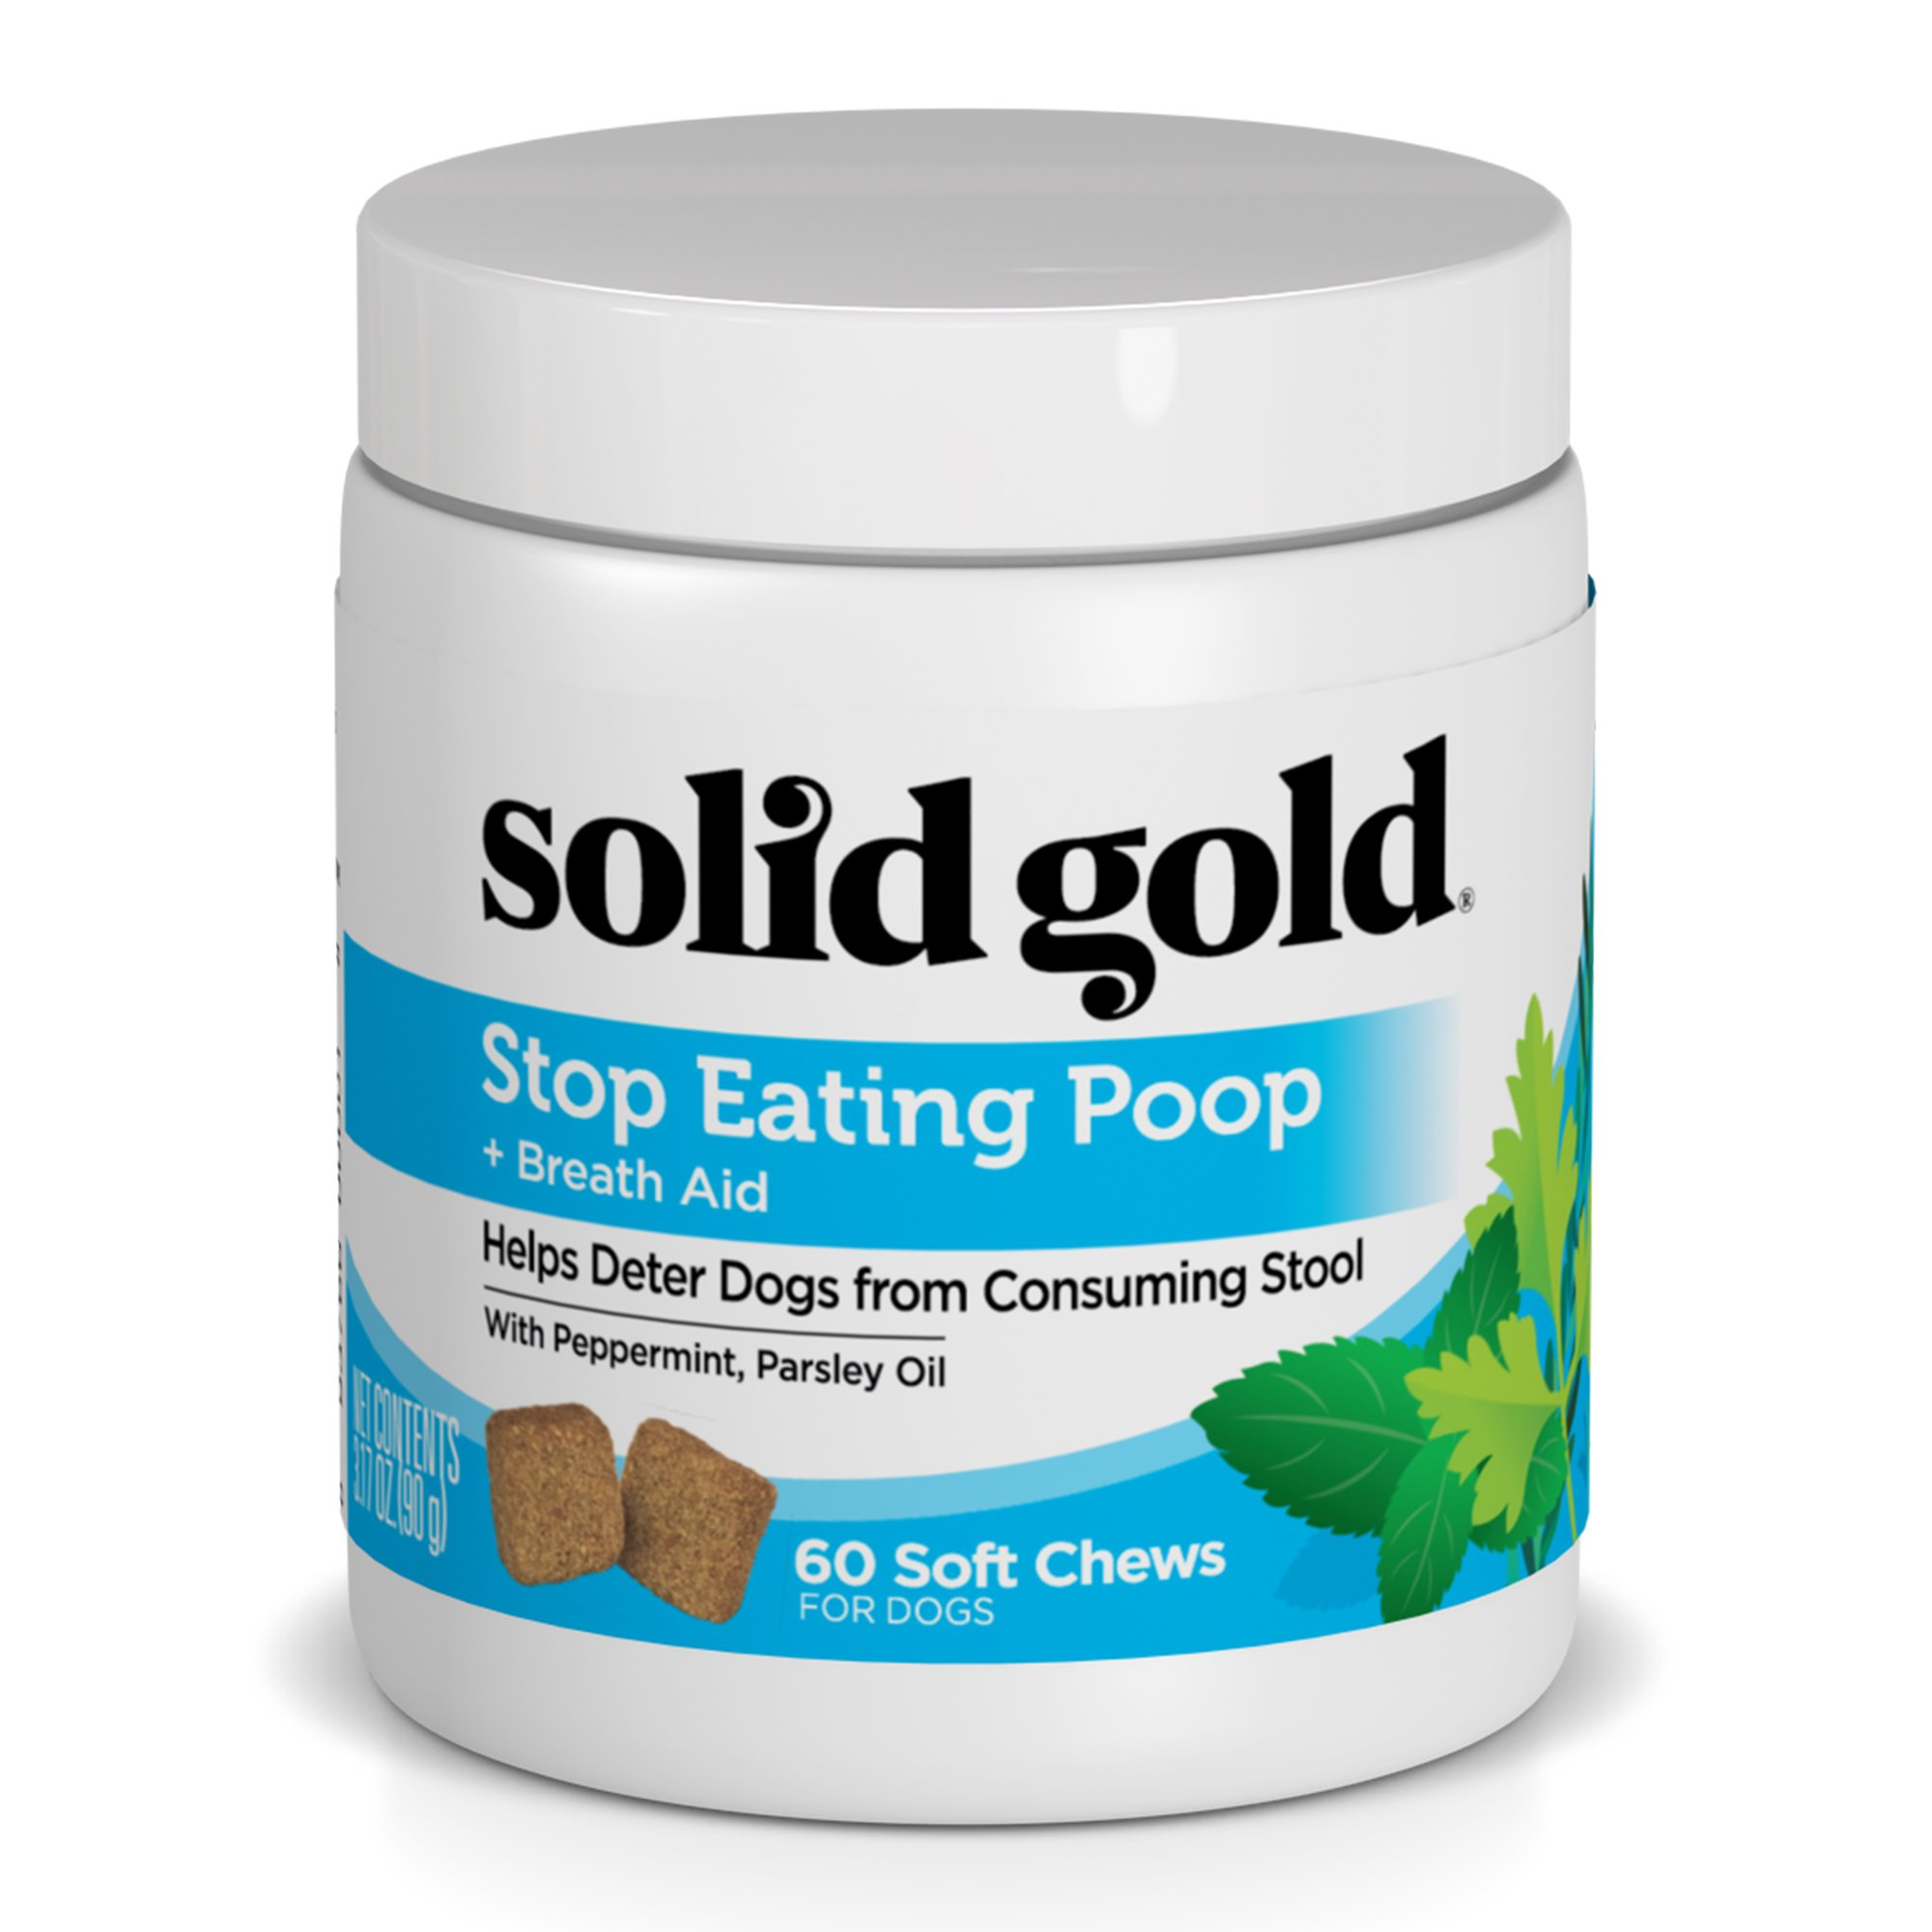 Solid Gold Stop Eating Poop for Dogs with Coprophagia; Natural, Grain-Free Supplement Chews with Peppermint, 60 Ct by Solid Gold